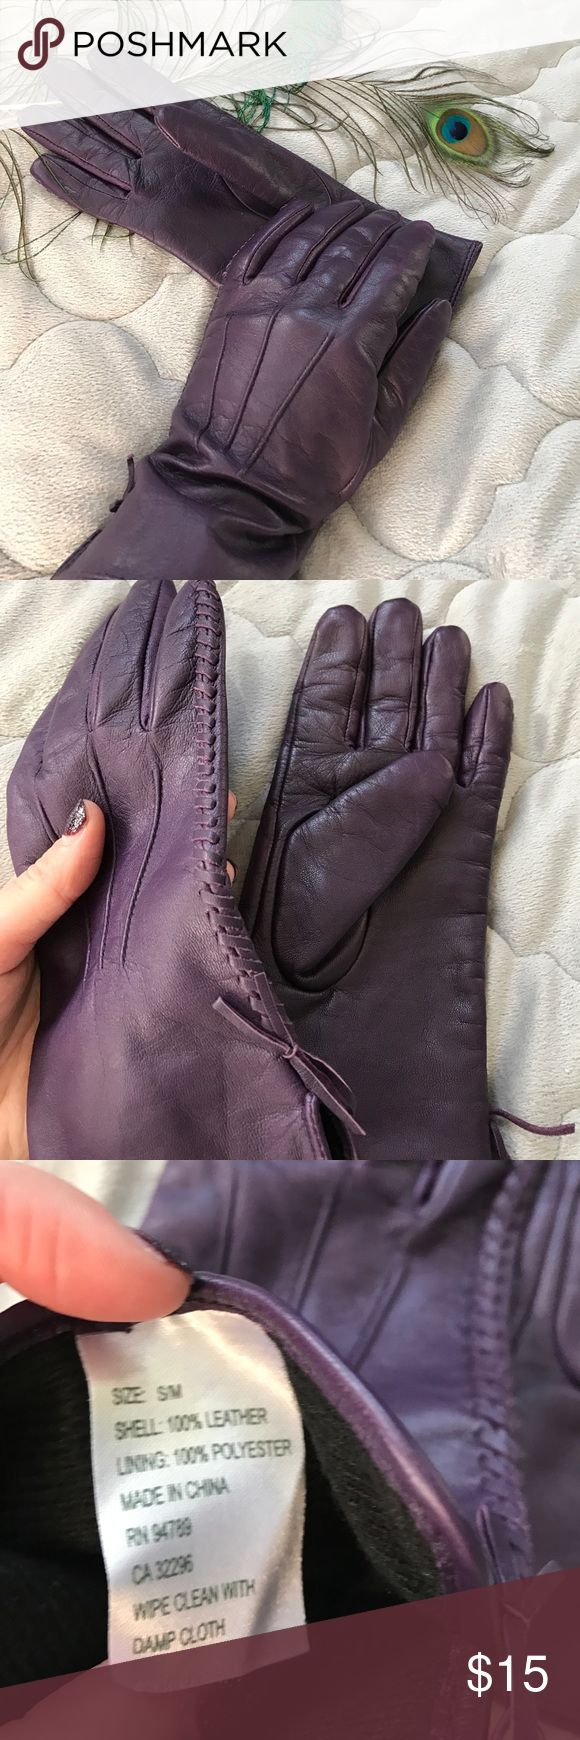 Black leather gloves with red buttons - Purple Leather Gloves These Elegant Gloves Are Practically Brand New 100 Leather Lined With